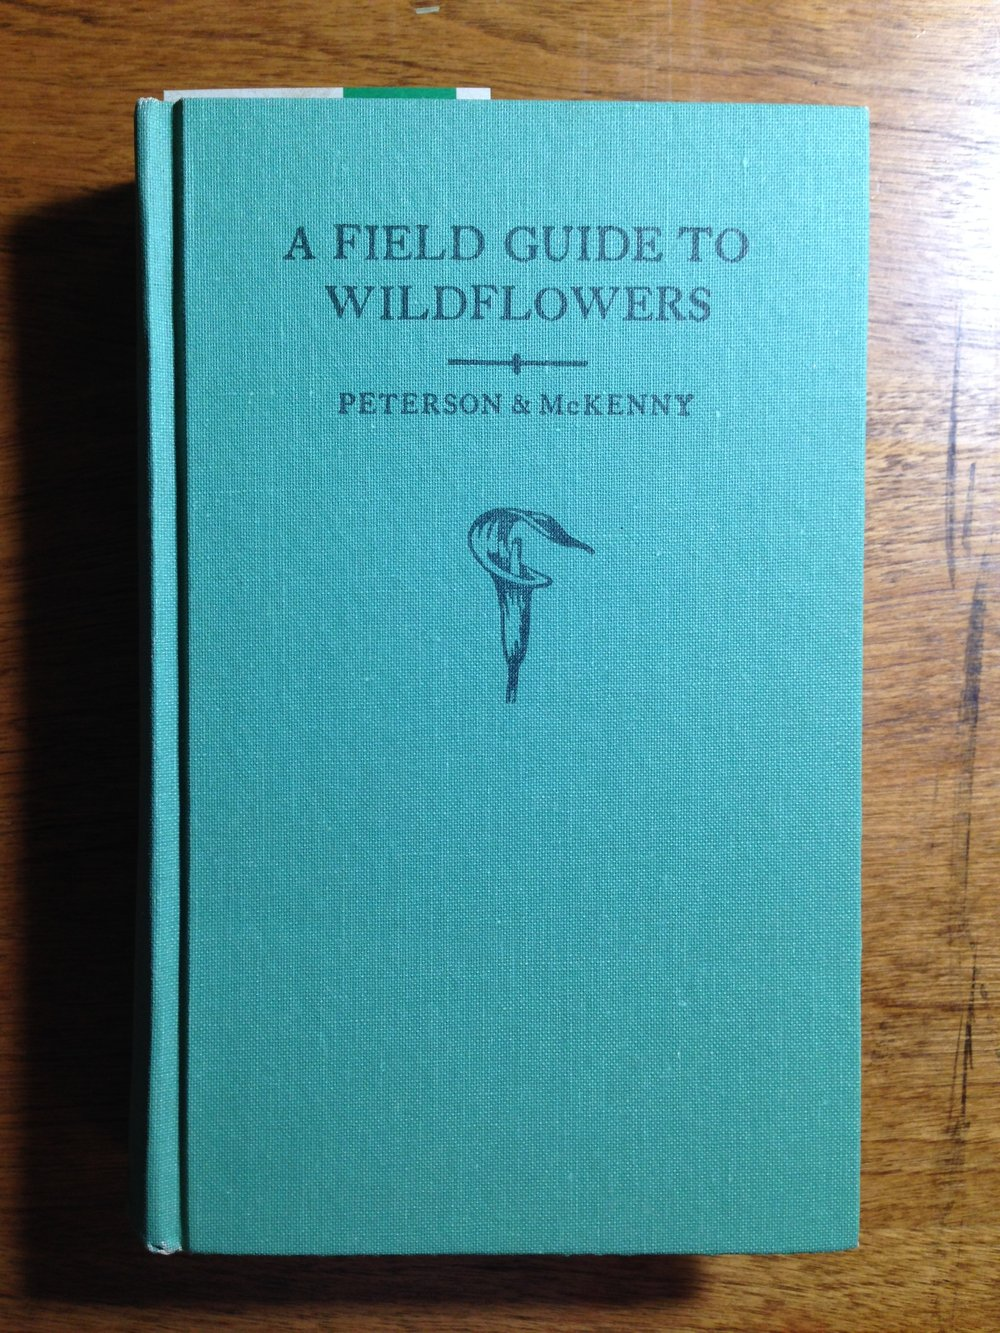 peterson_fieldguidetowildflowers.JPG